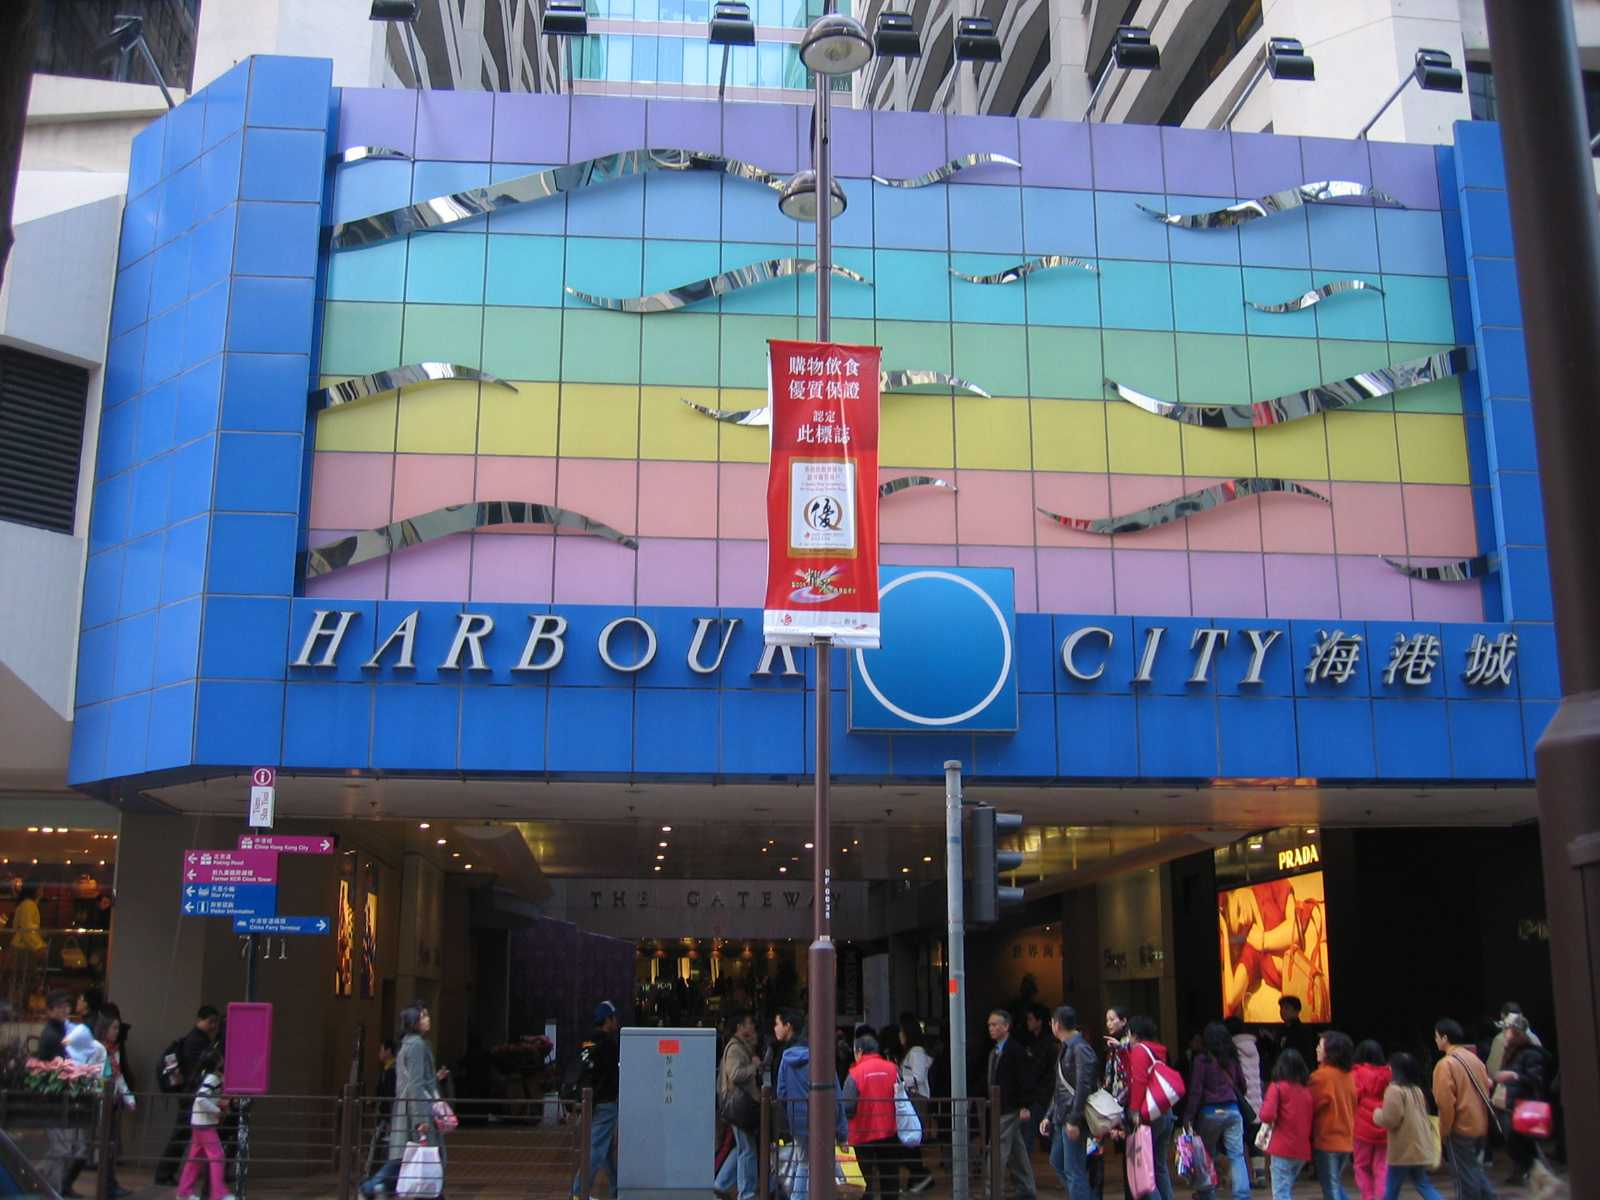 Colorful entrance to Harbour City